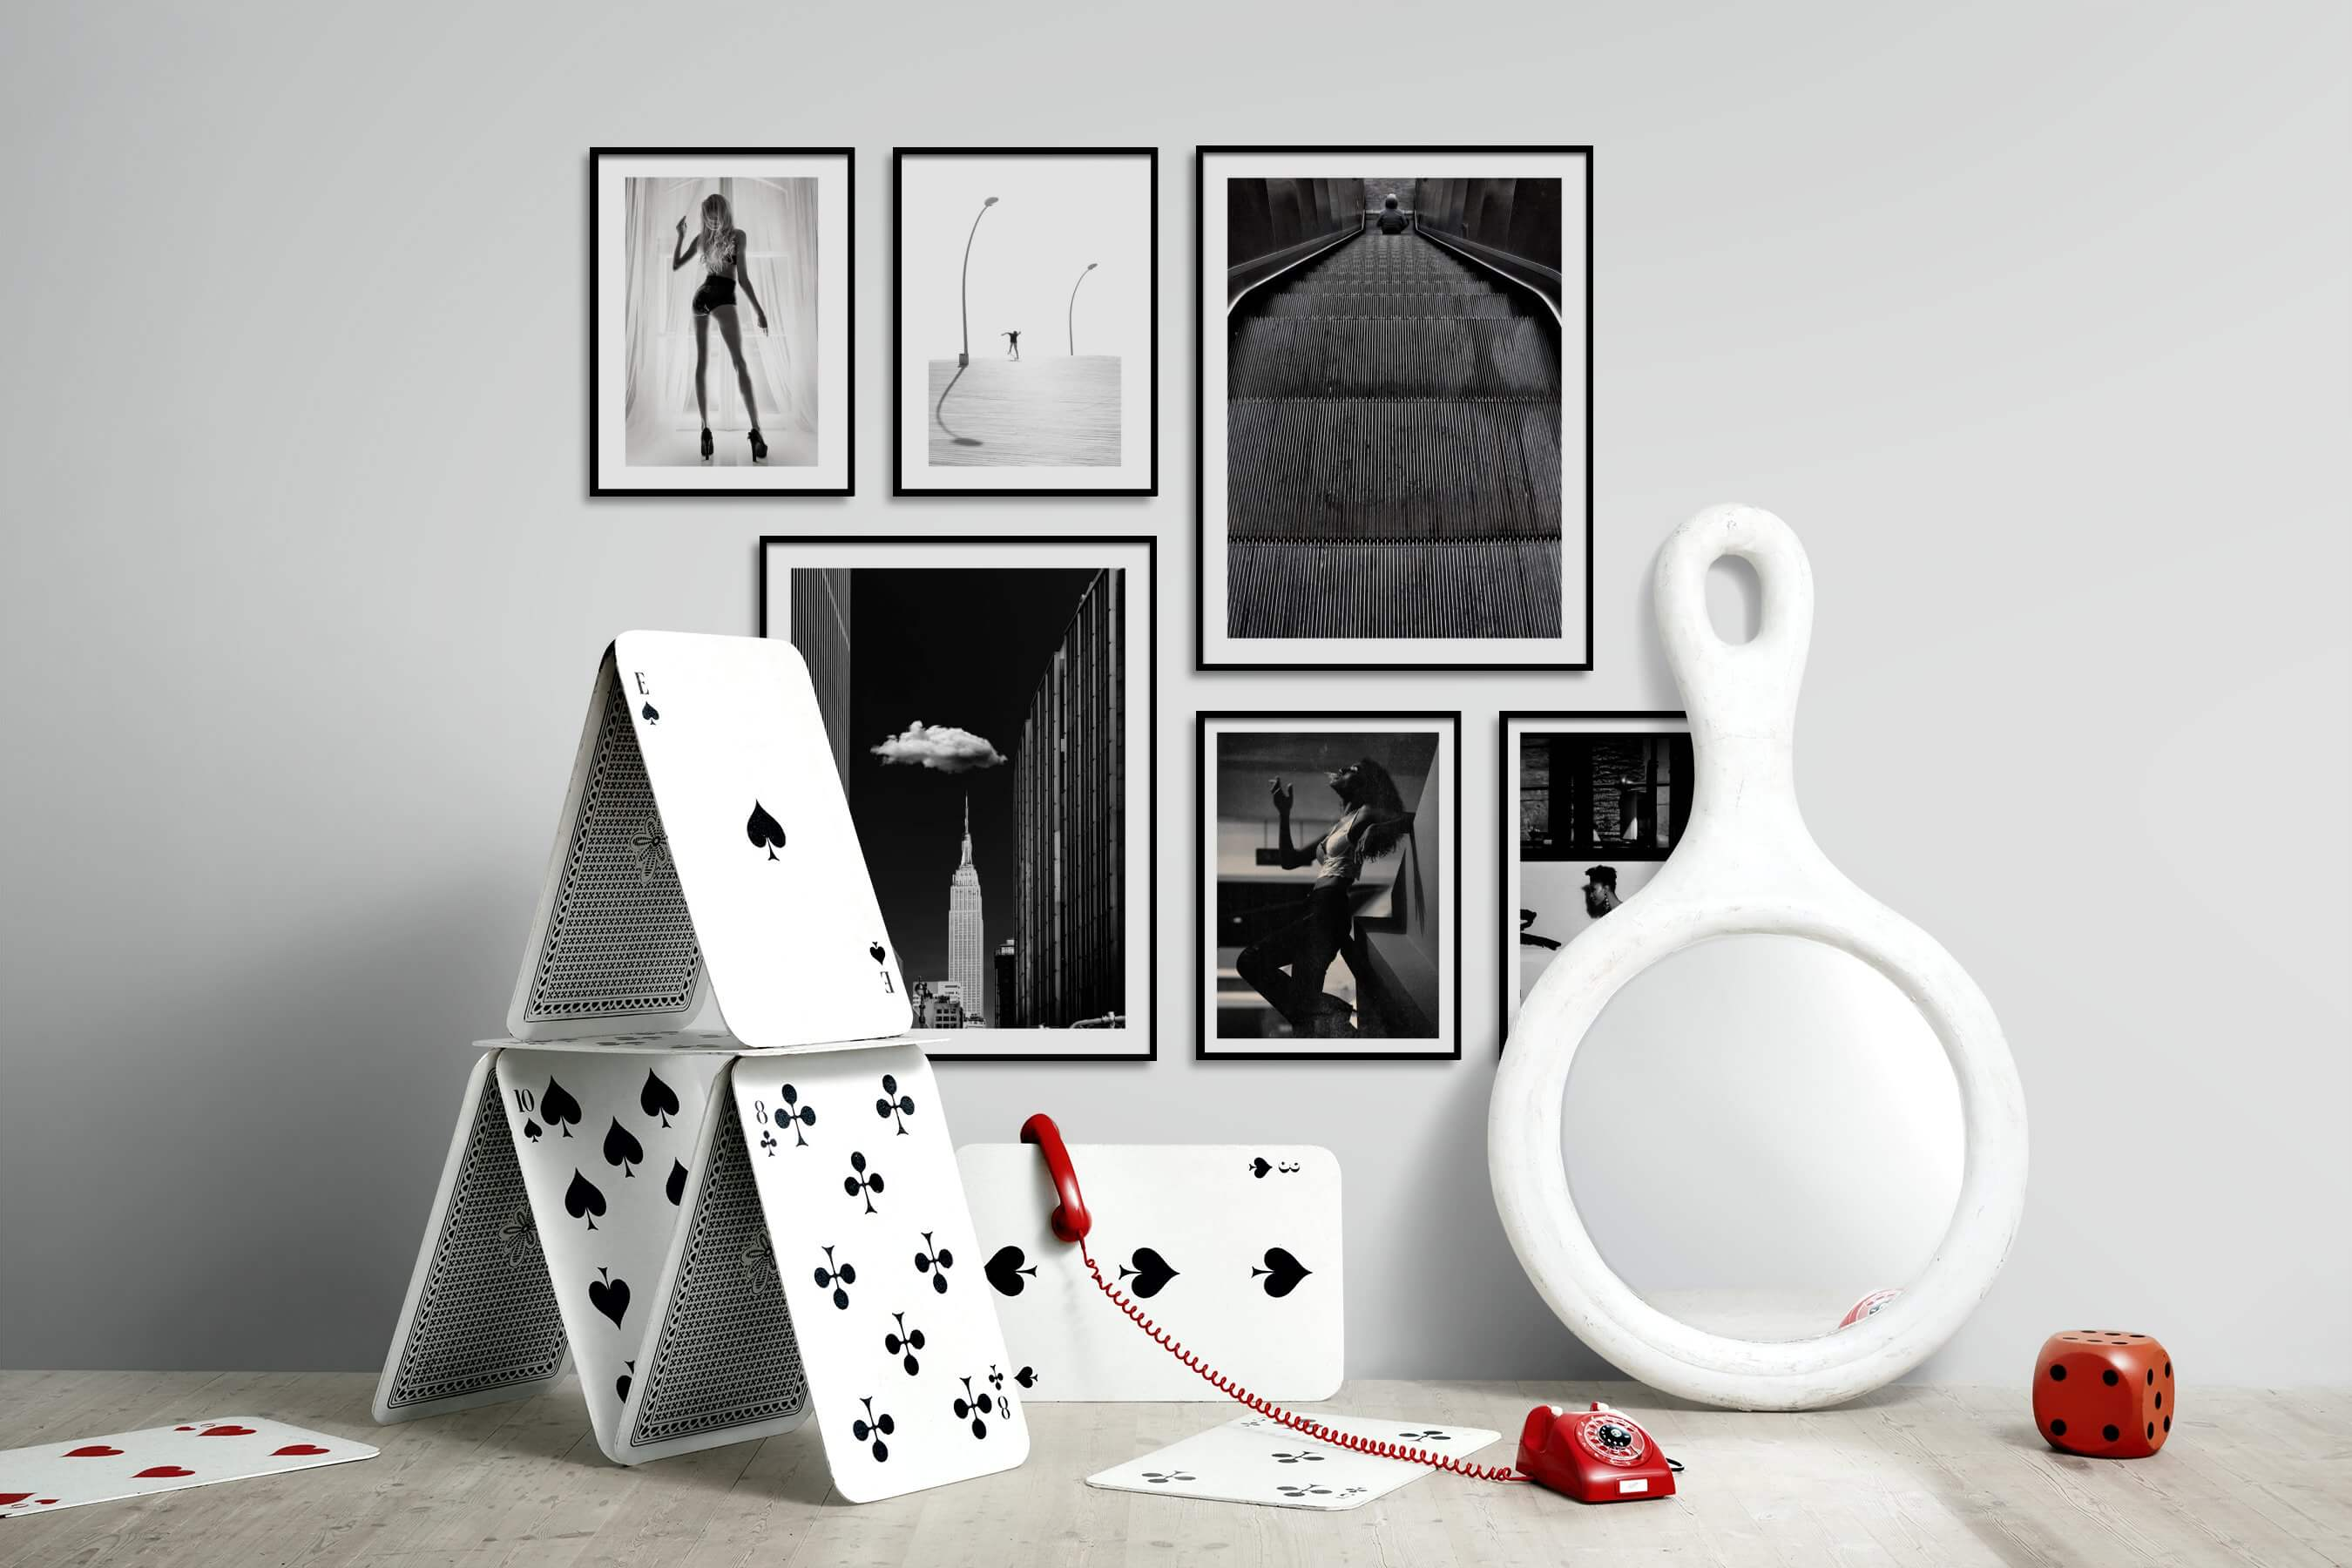 Gallery wall idea with six framed pictures arranged on a wall depicting Fashion & Beauty, Black & White, Bright Tones, For the Moderate, City Life, Americana, and Vintage